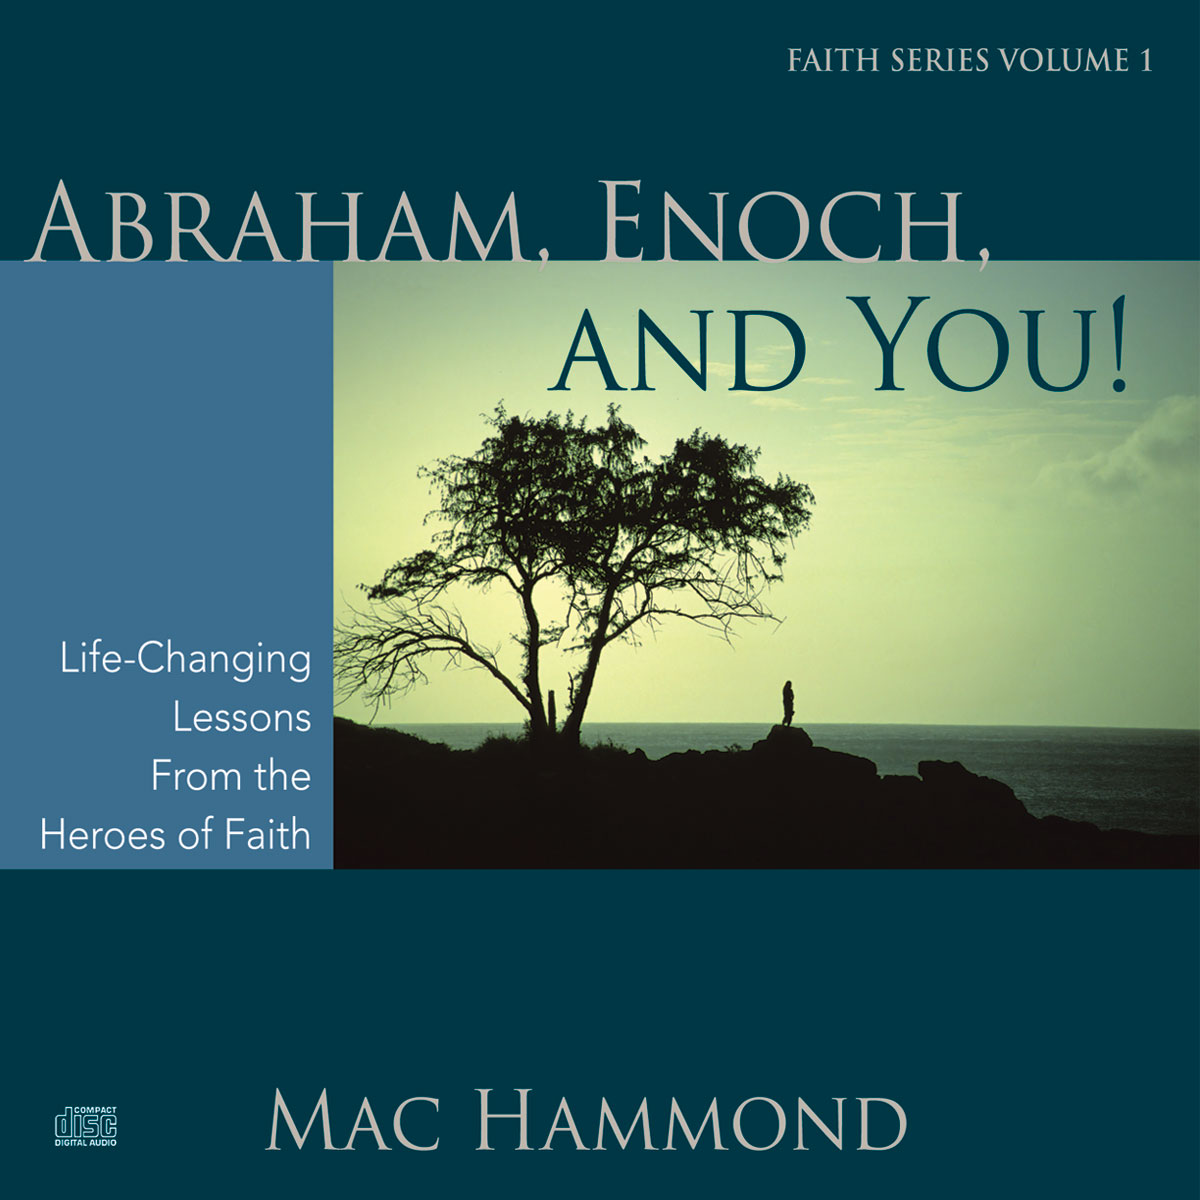 Faith Series Vol.1 by Mac Hammond